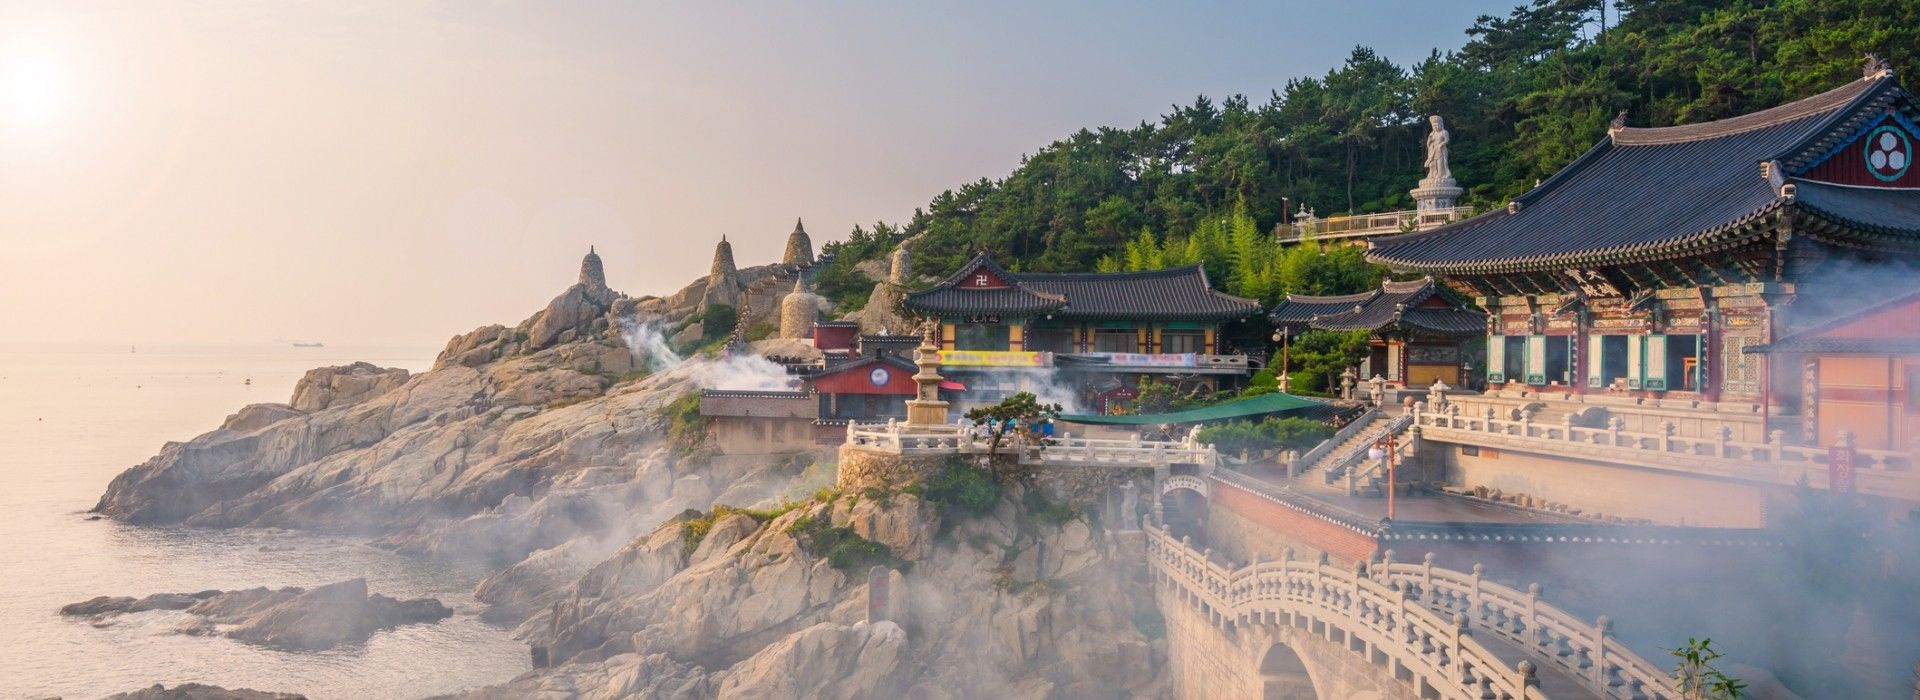 Beach, romance, getaways and relaxation Tours in South Korea